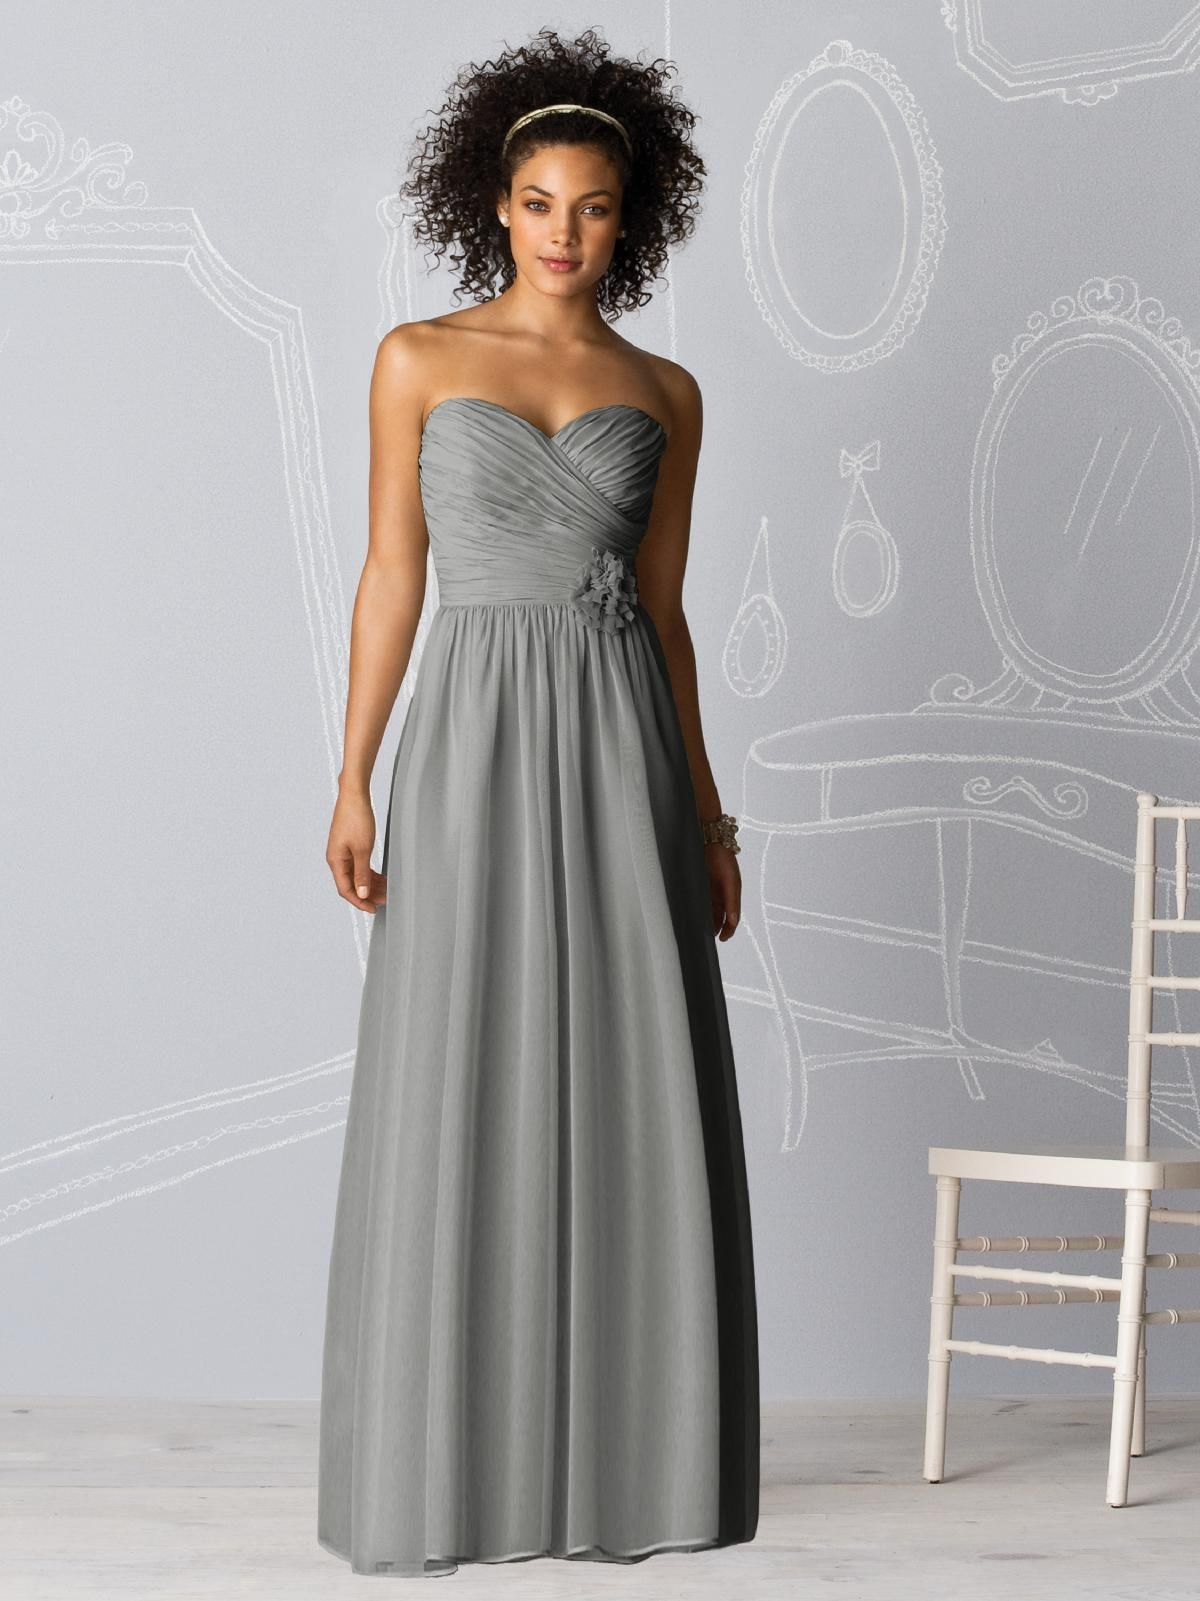 After six bridesmaid dress 6682 wedding after six bridesmaid dress 6682 ombrellifo Image collections